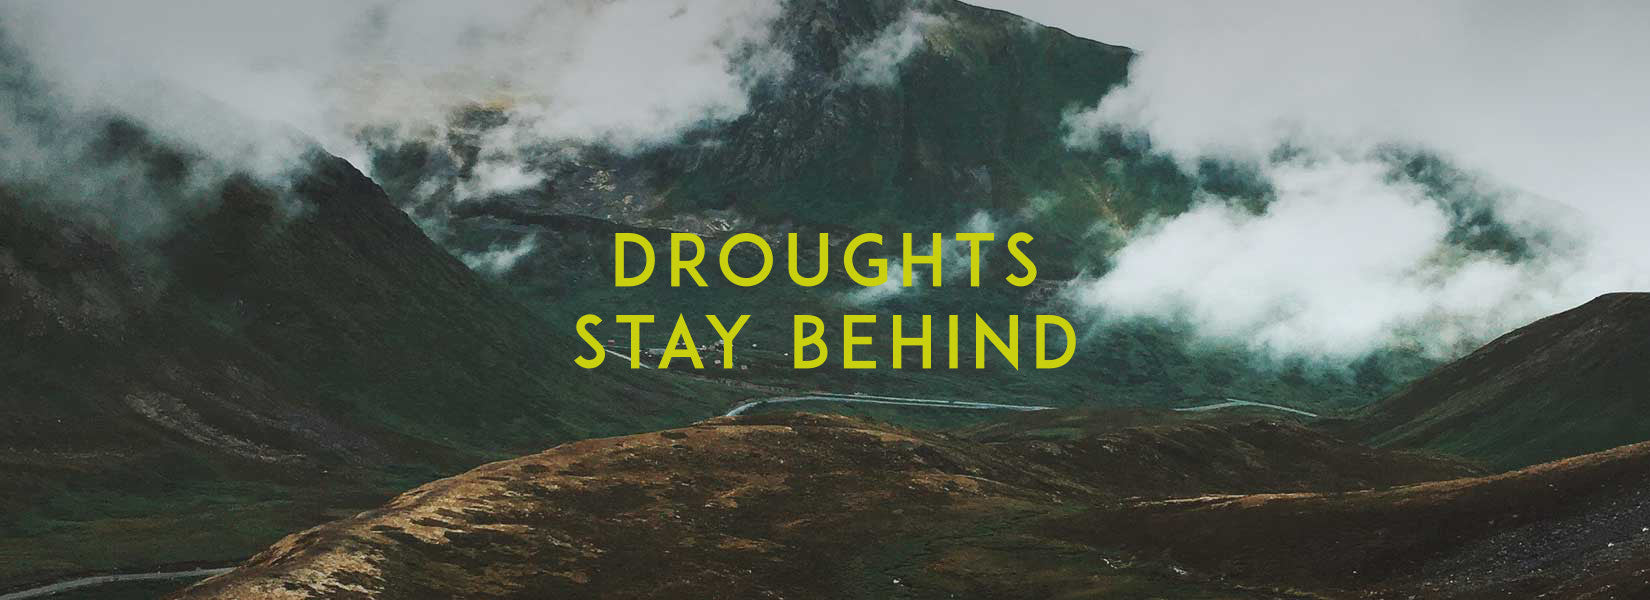 "Droughts Announces New Album Stay Behind, Shares New Track ""Welcome Home"""